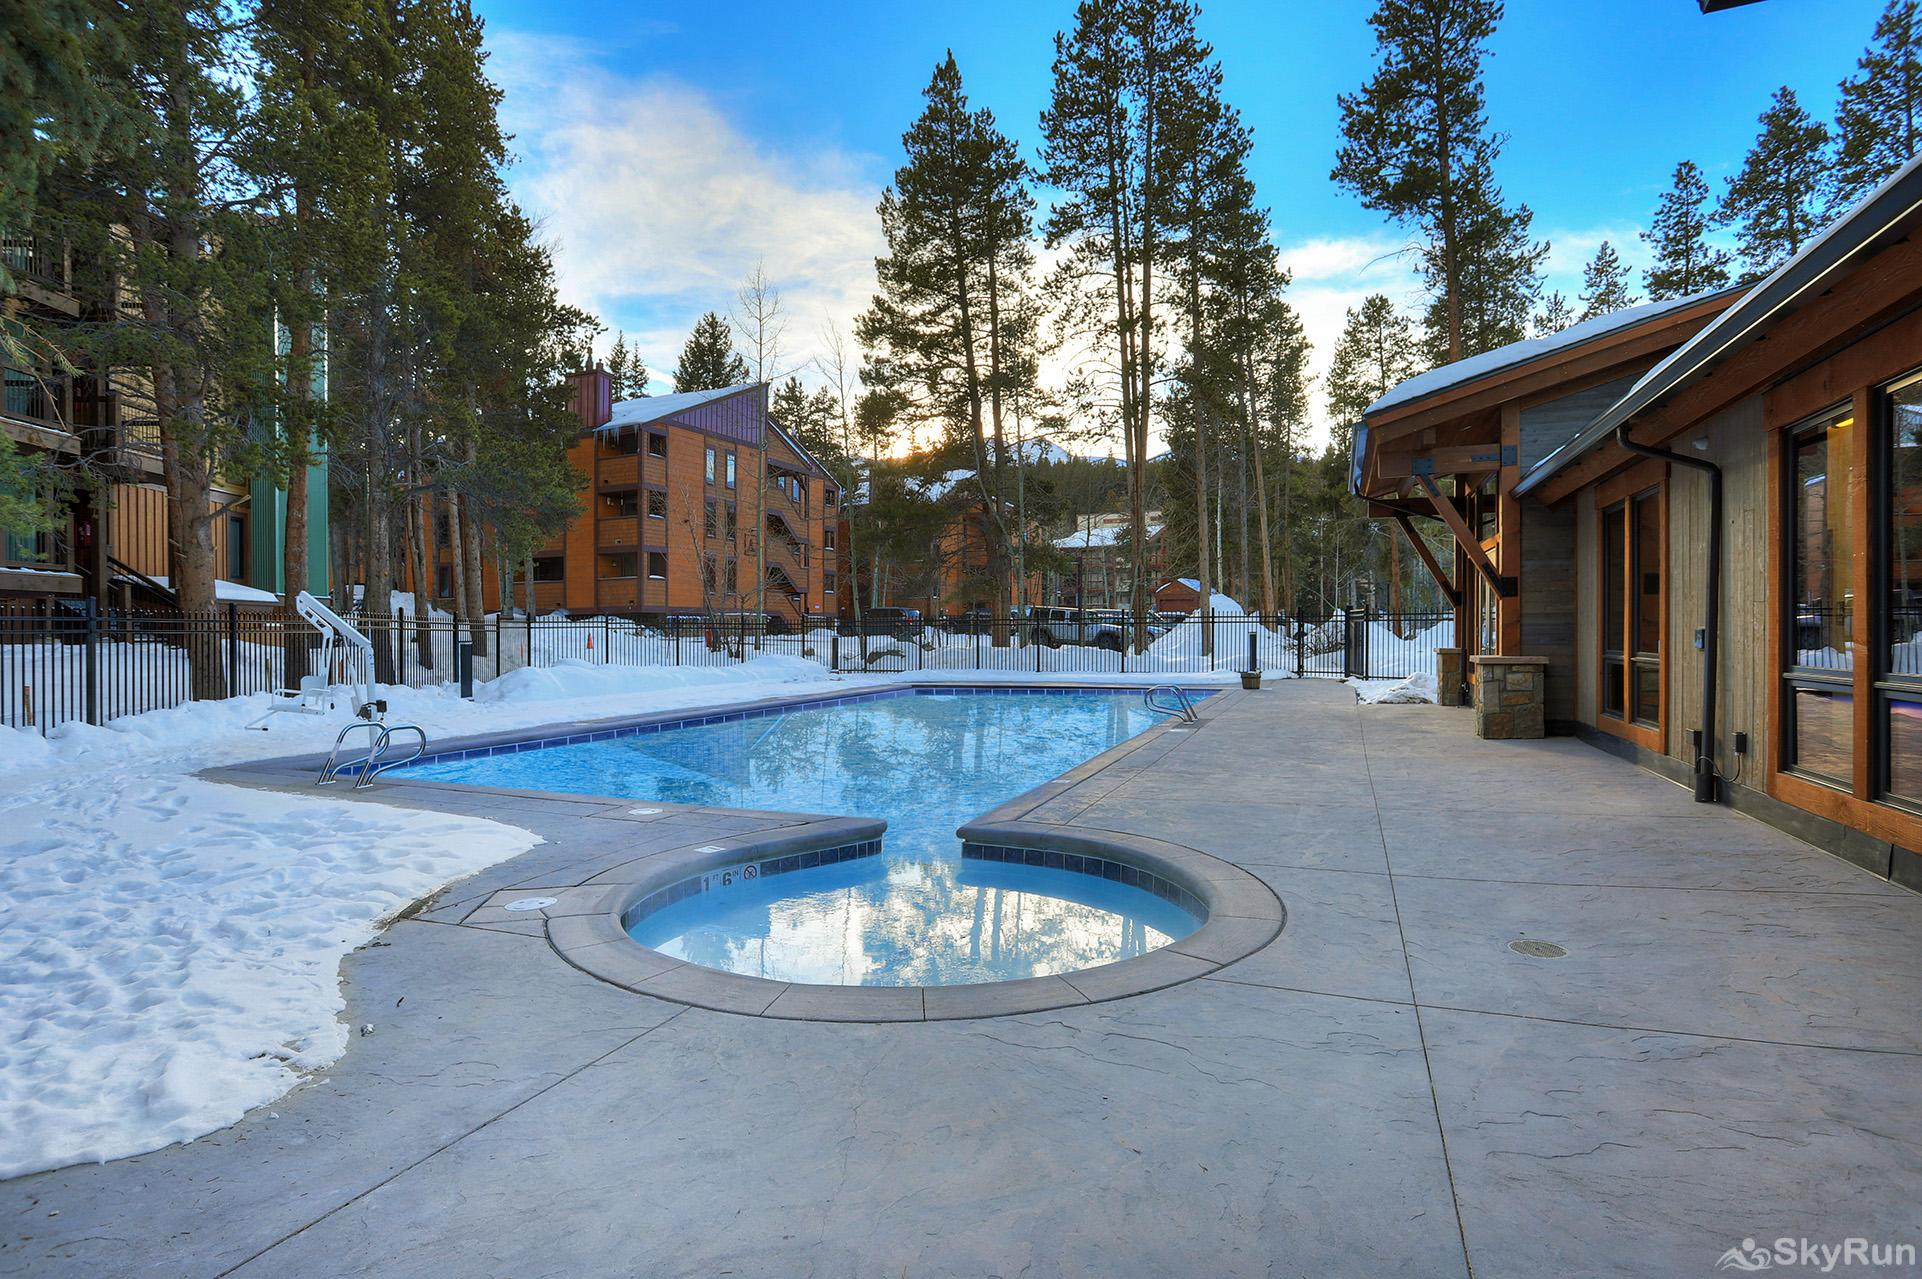 The Lift C12 Outdoor heated pool and hot tubs at the Columbine Pool Complex